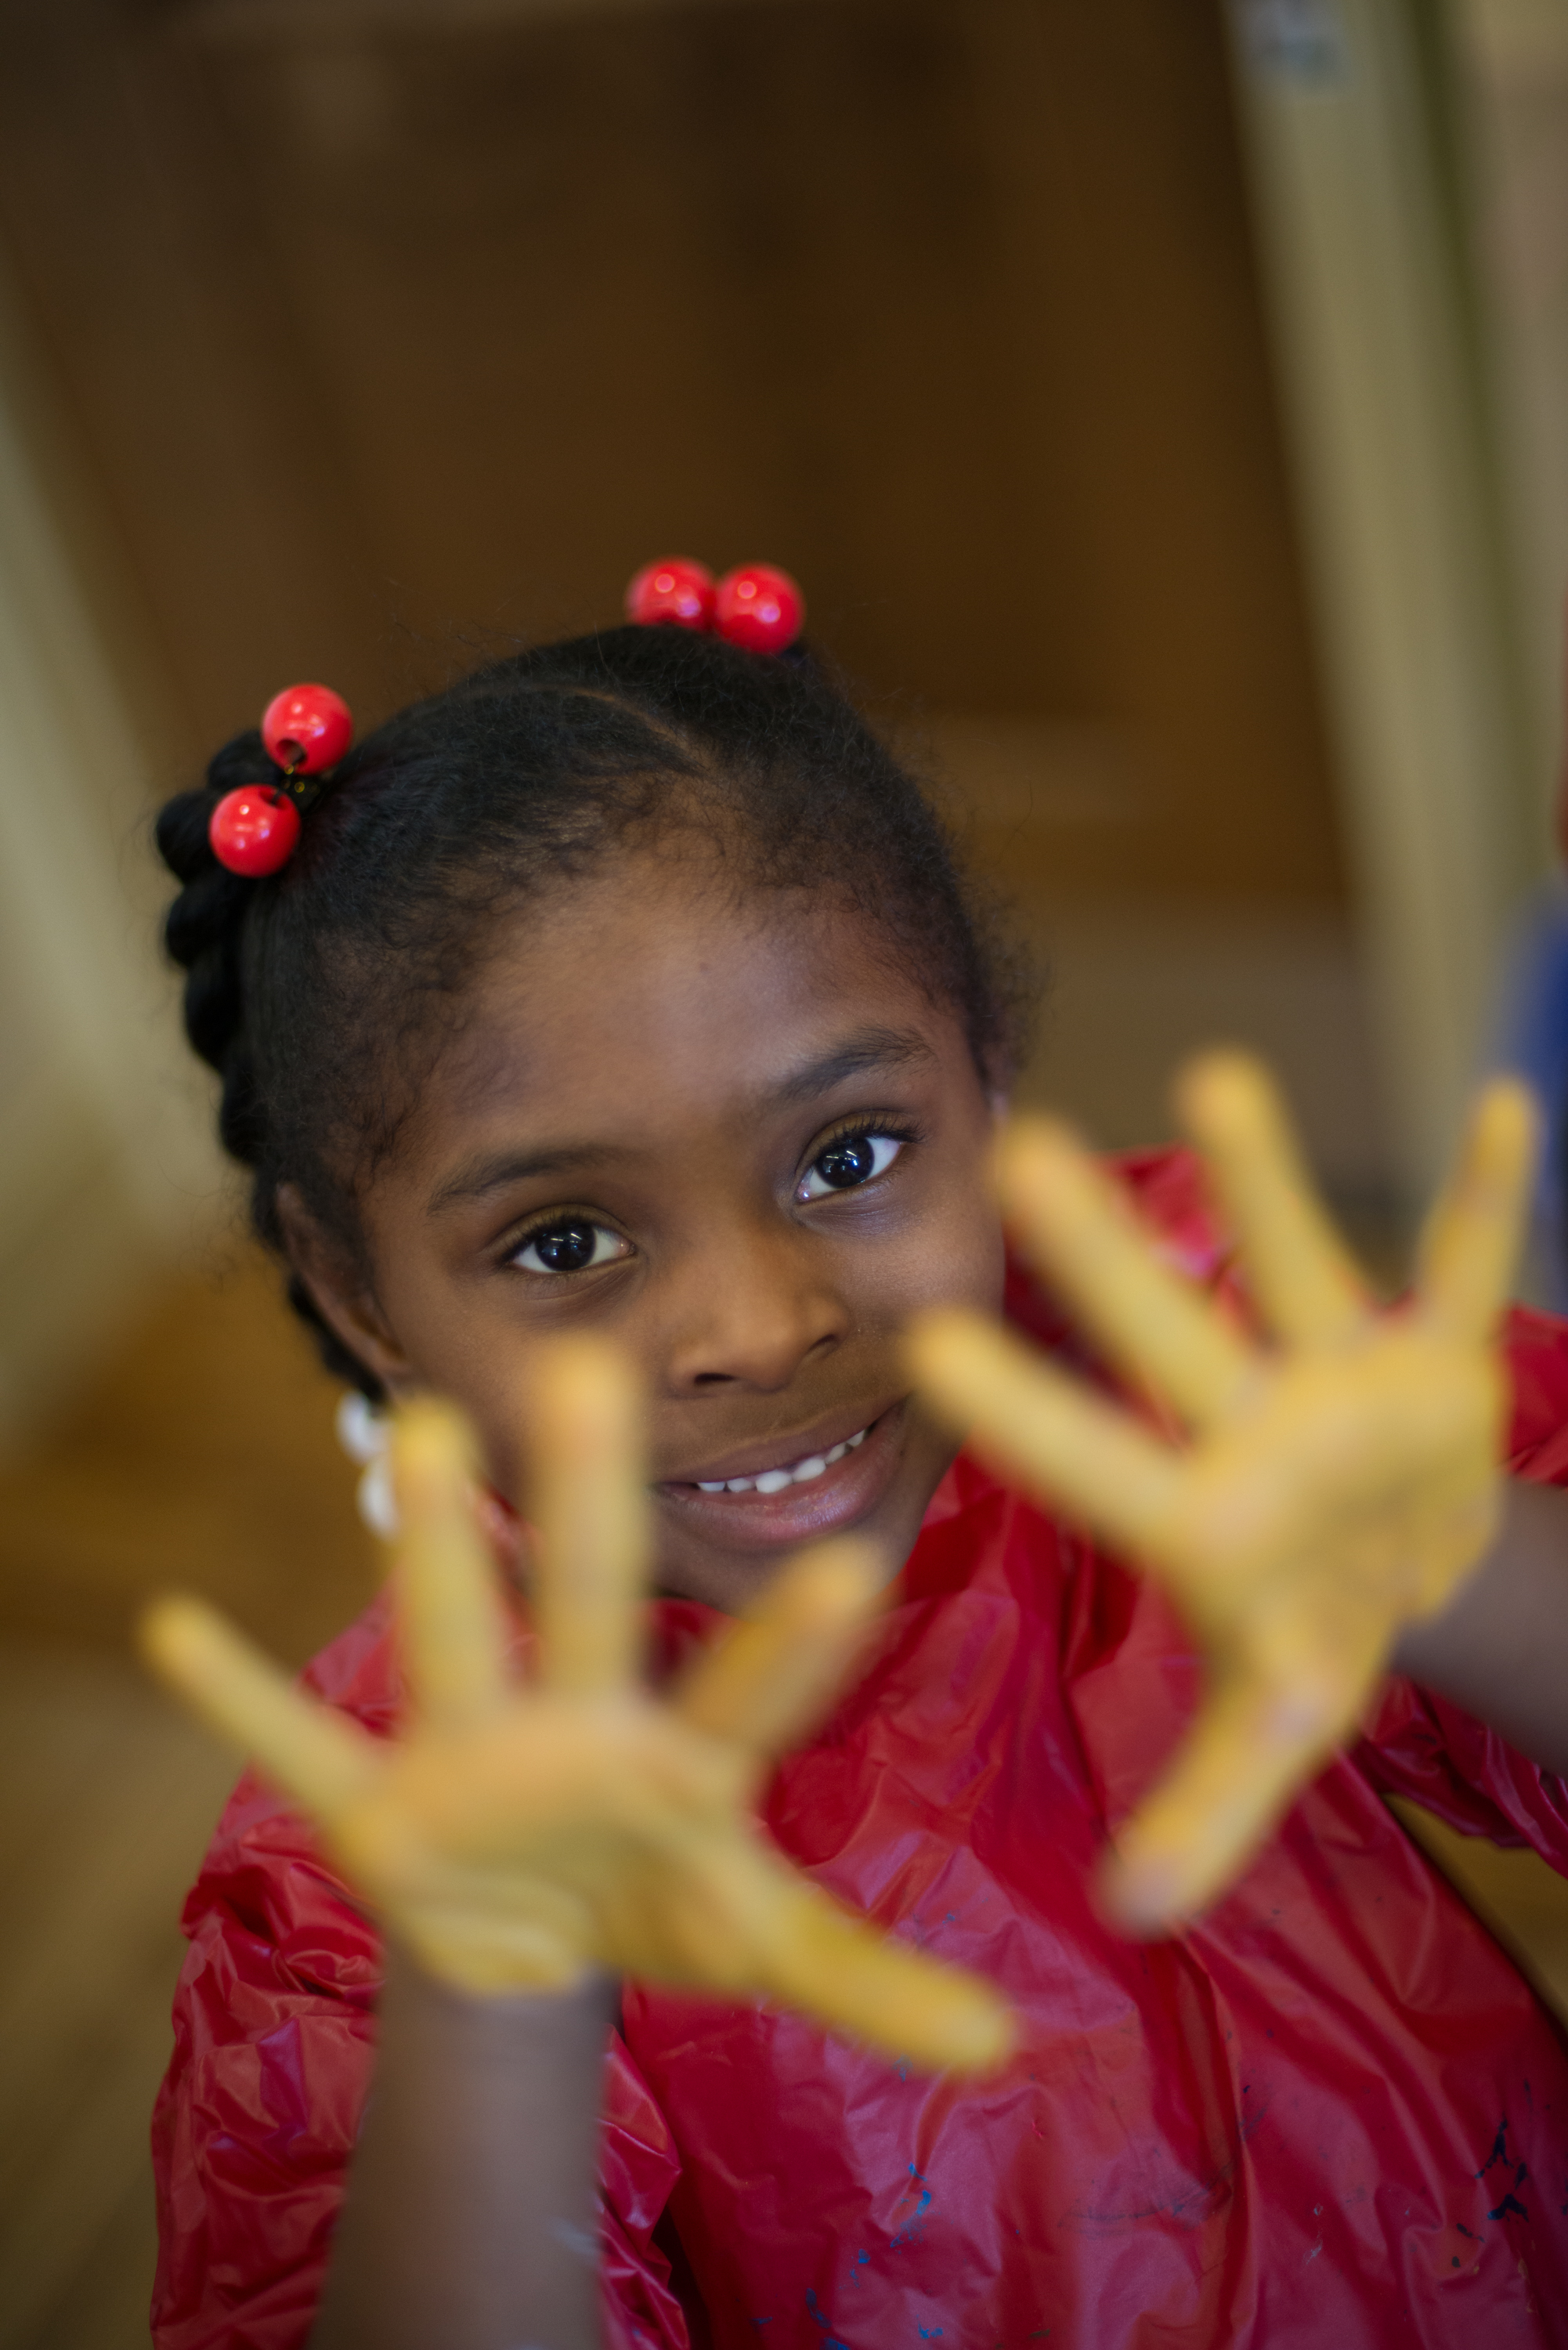 The Cluster School PTA supports arts education, teacher training, and other programming.  Photo credit: Djenno Bacvic Photography